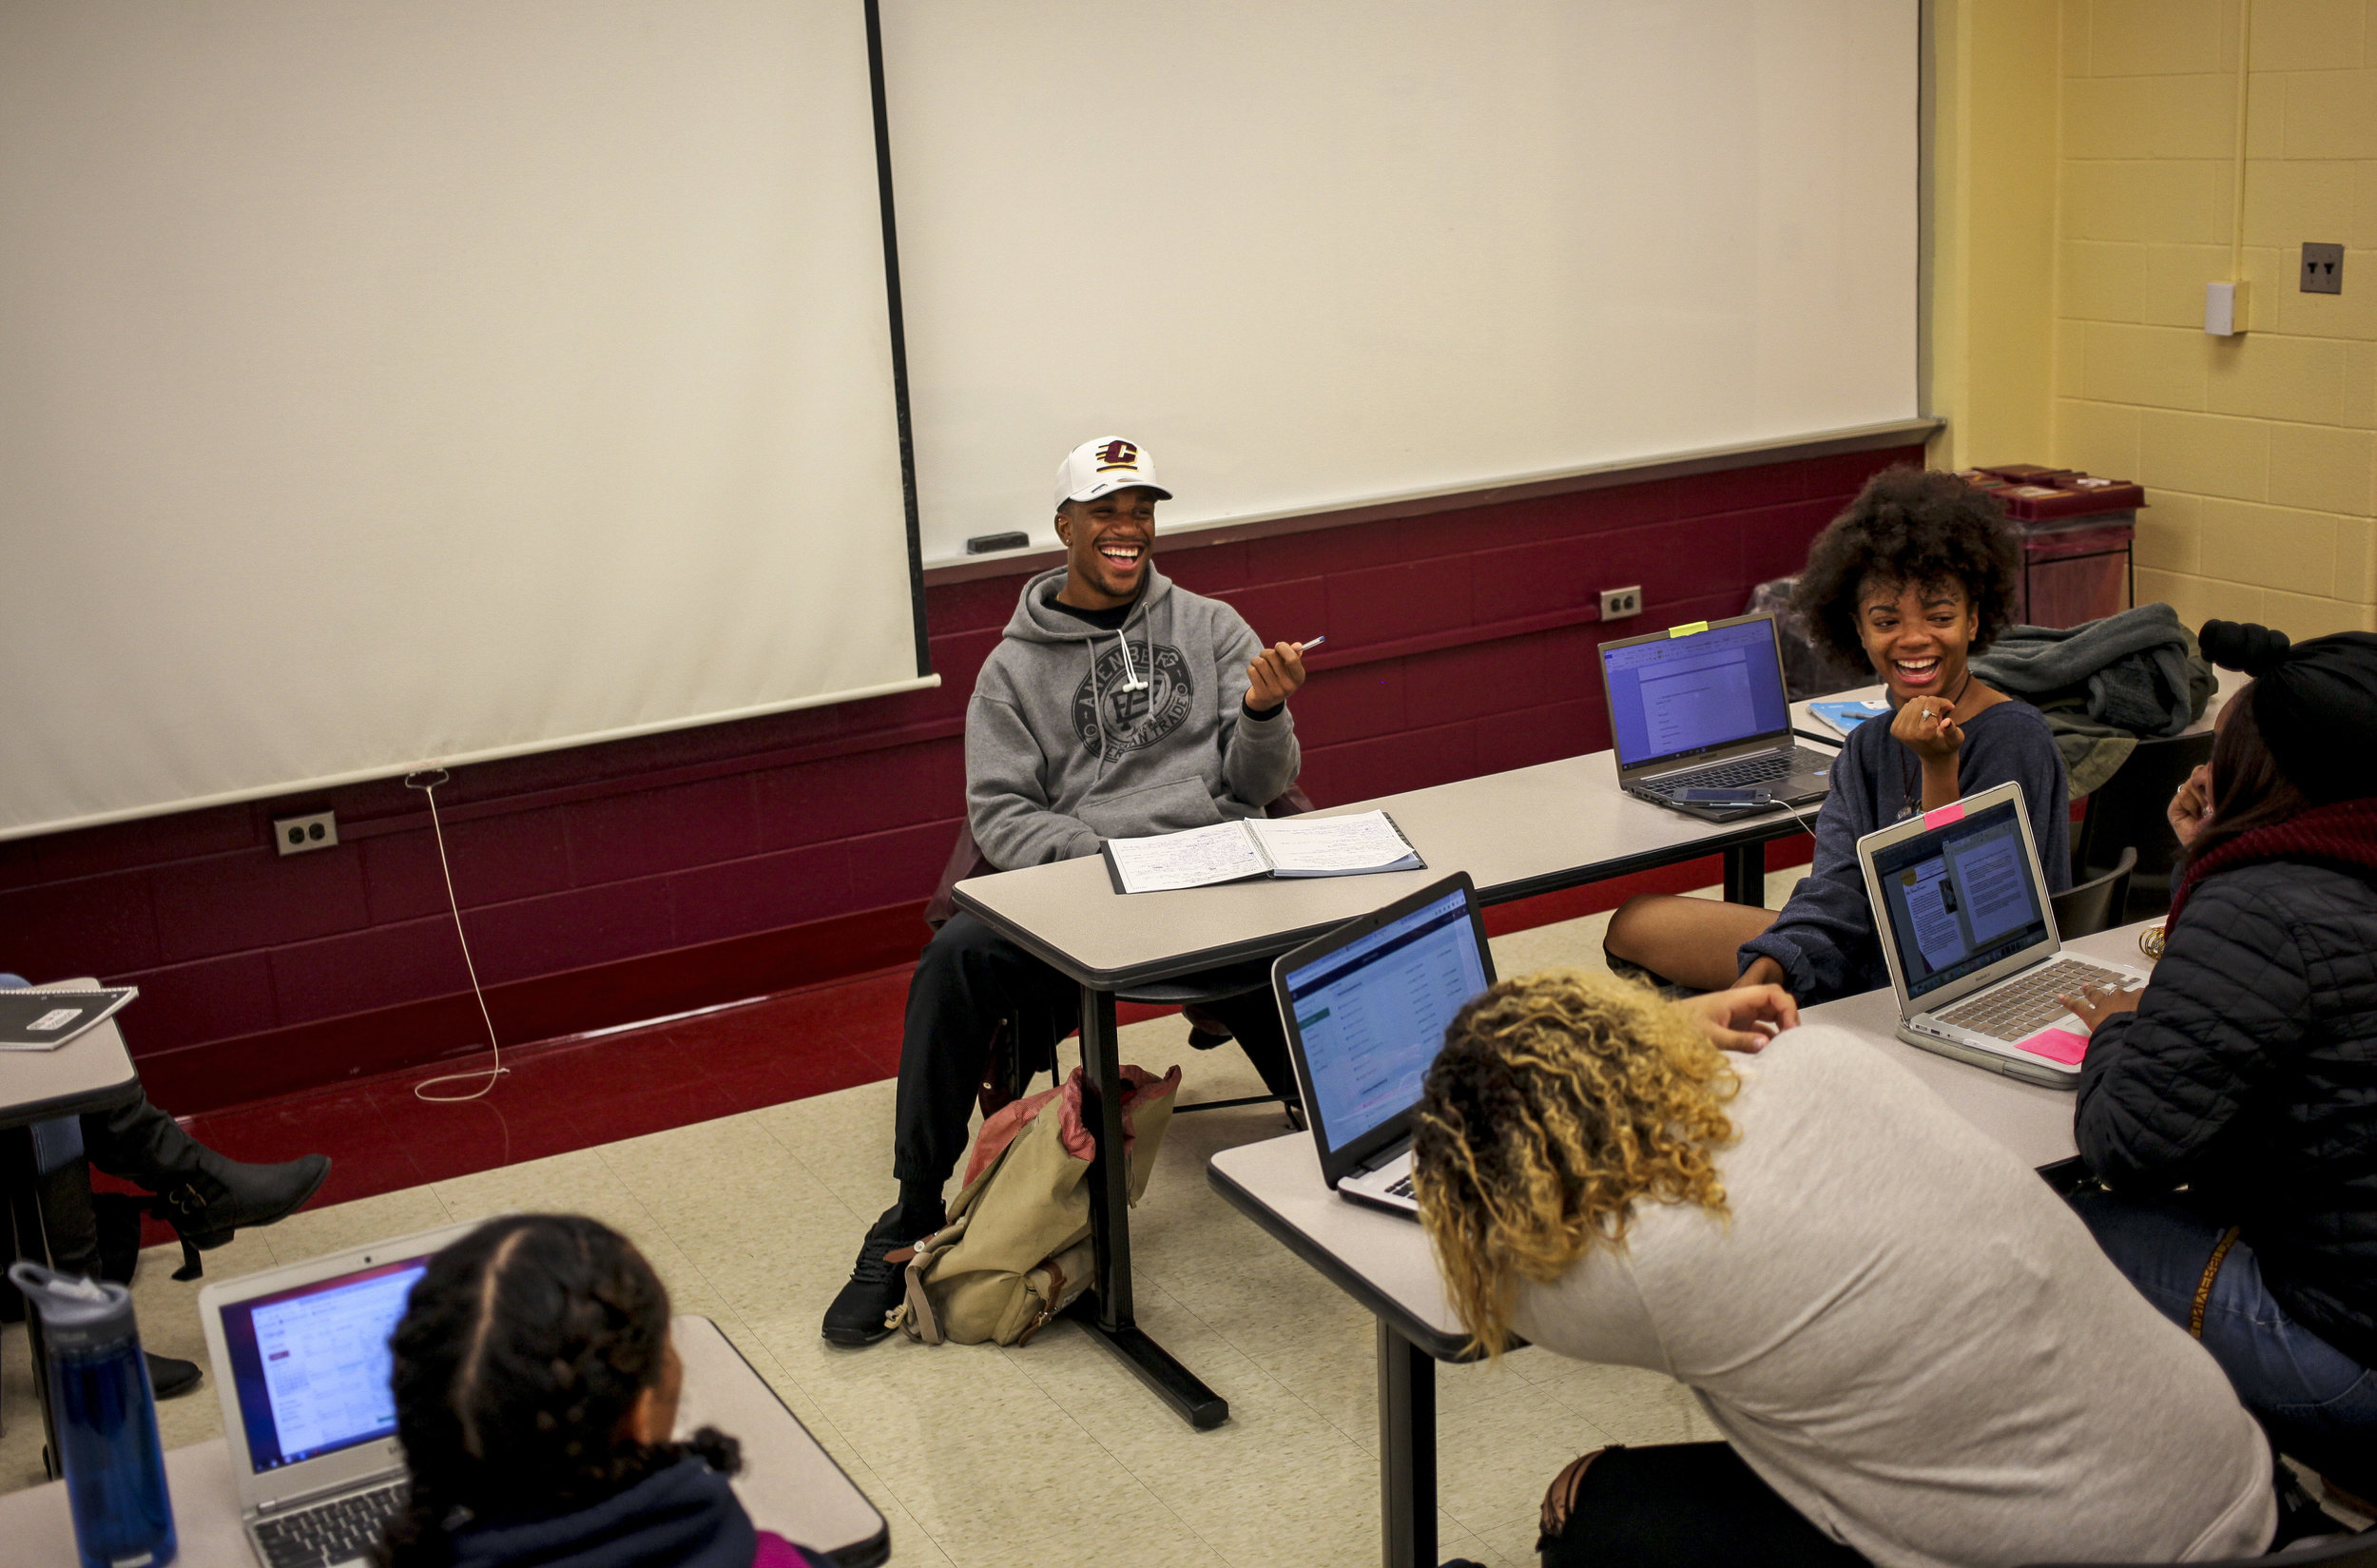 Ray Golden, Jr., makes a joke during a meeting of the Central Michigan University NAACP chapter, of which Golden is vice-president.